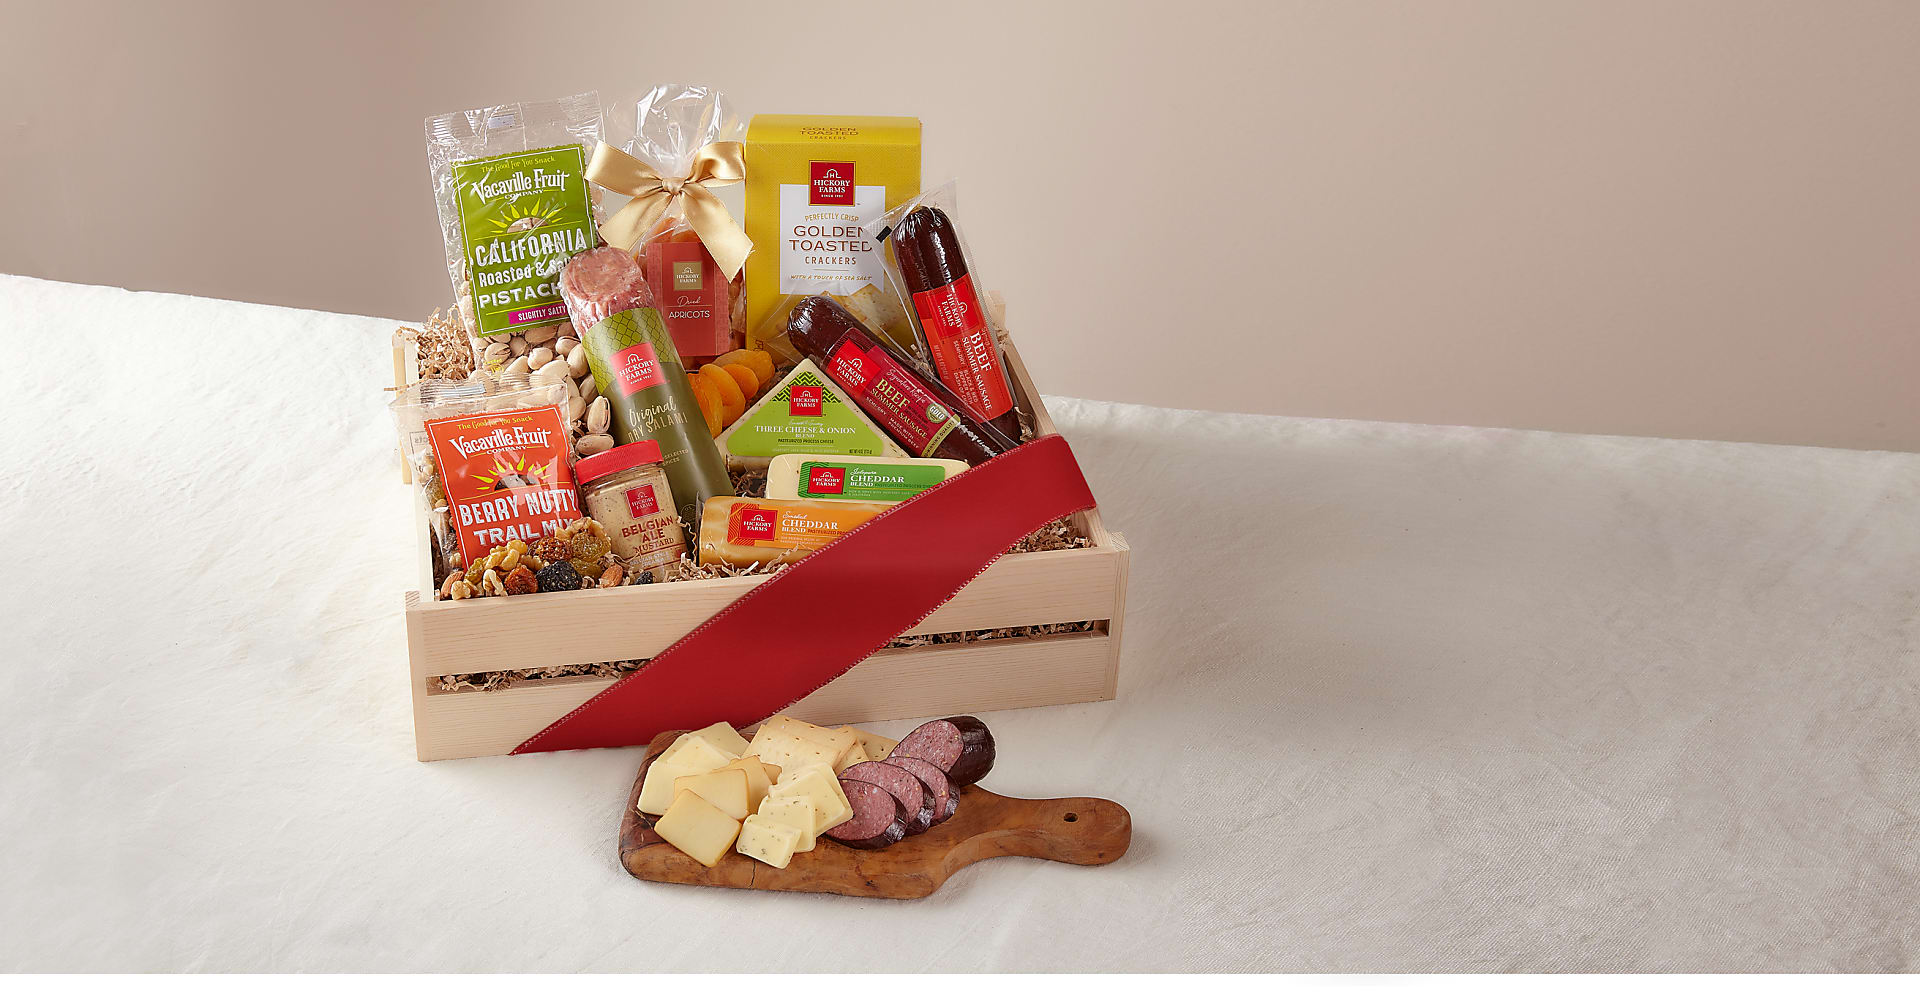 Valentine's Day Charcuterie Gift Crate - Image 1 Of 2